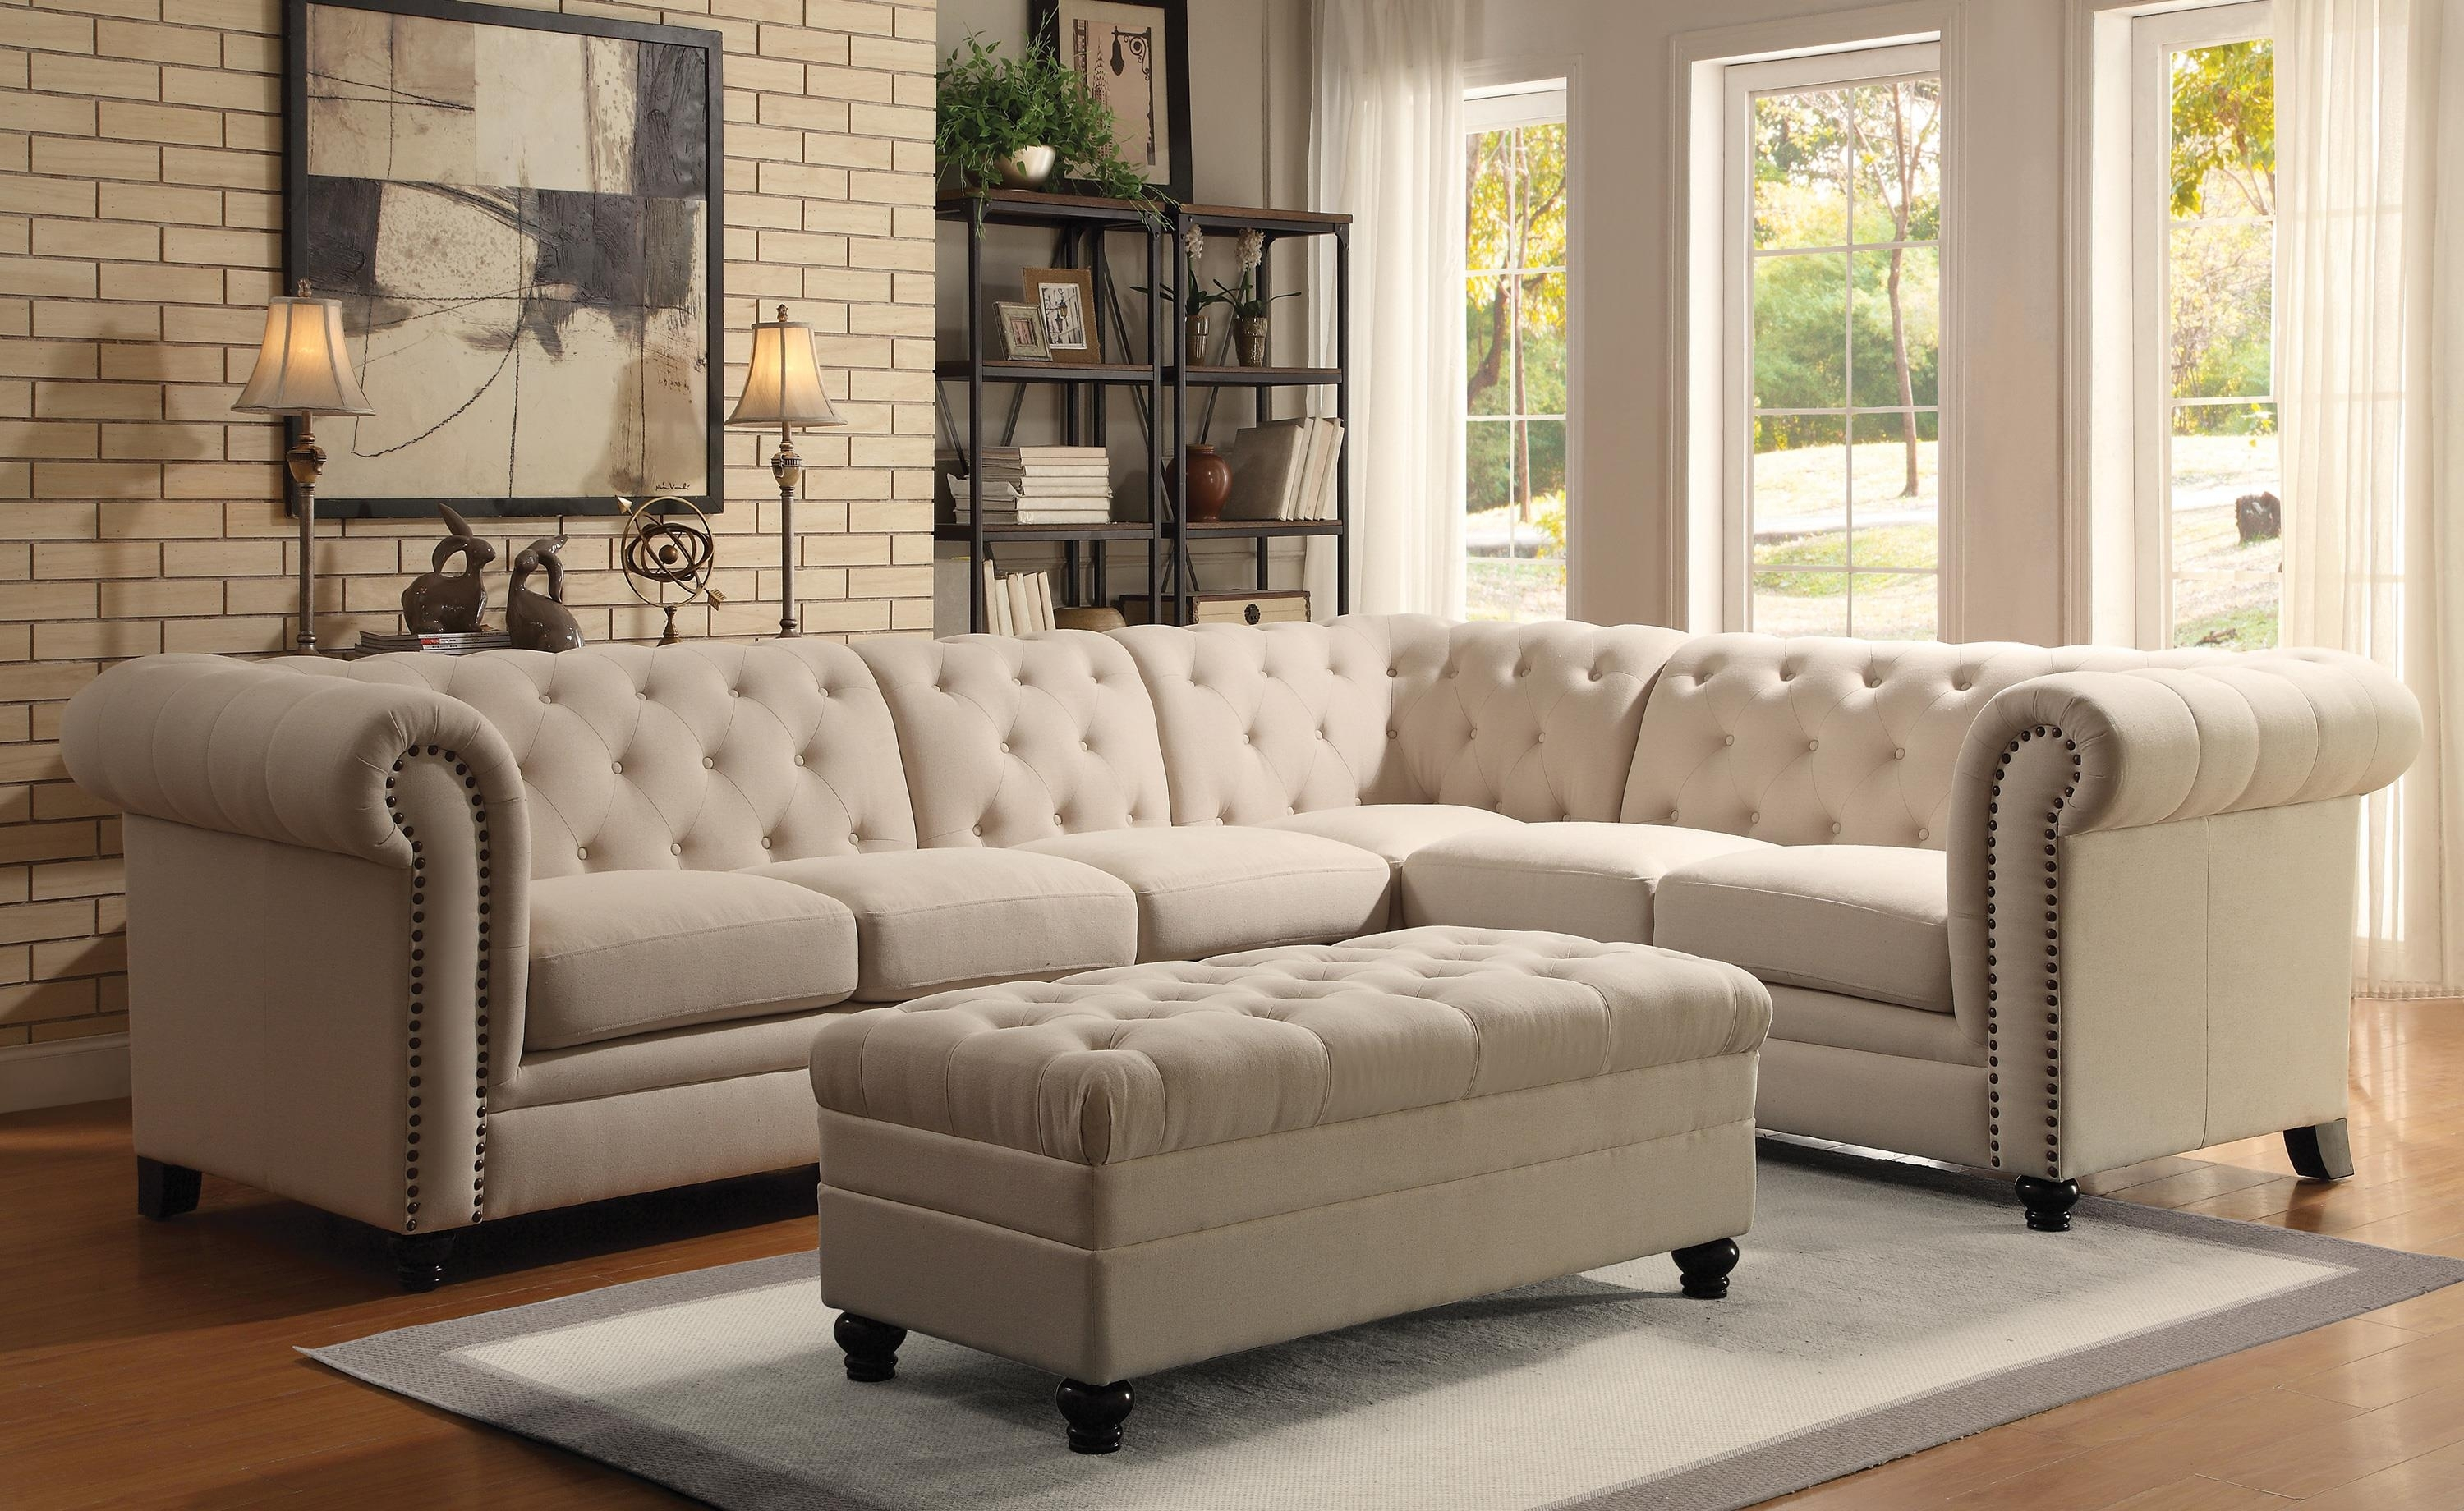 Sofa : Trendy Tufted Sofa Sectional Light Brown Fabric Ashley Pertaining To Ashley Tufted Sofas (Image 10 of 10)